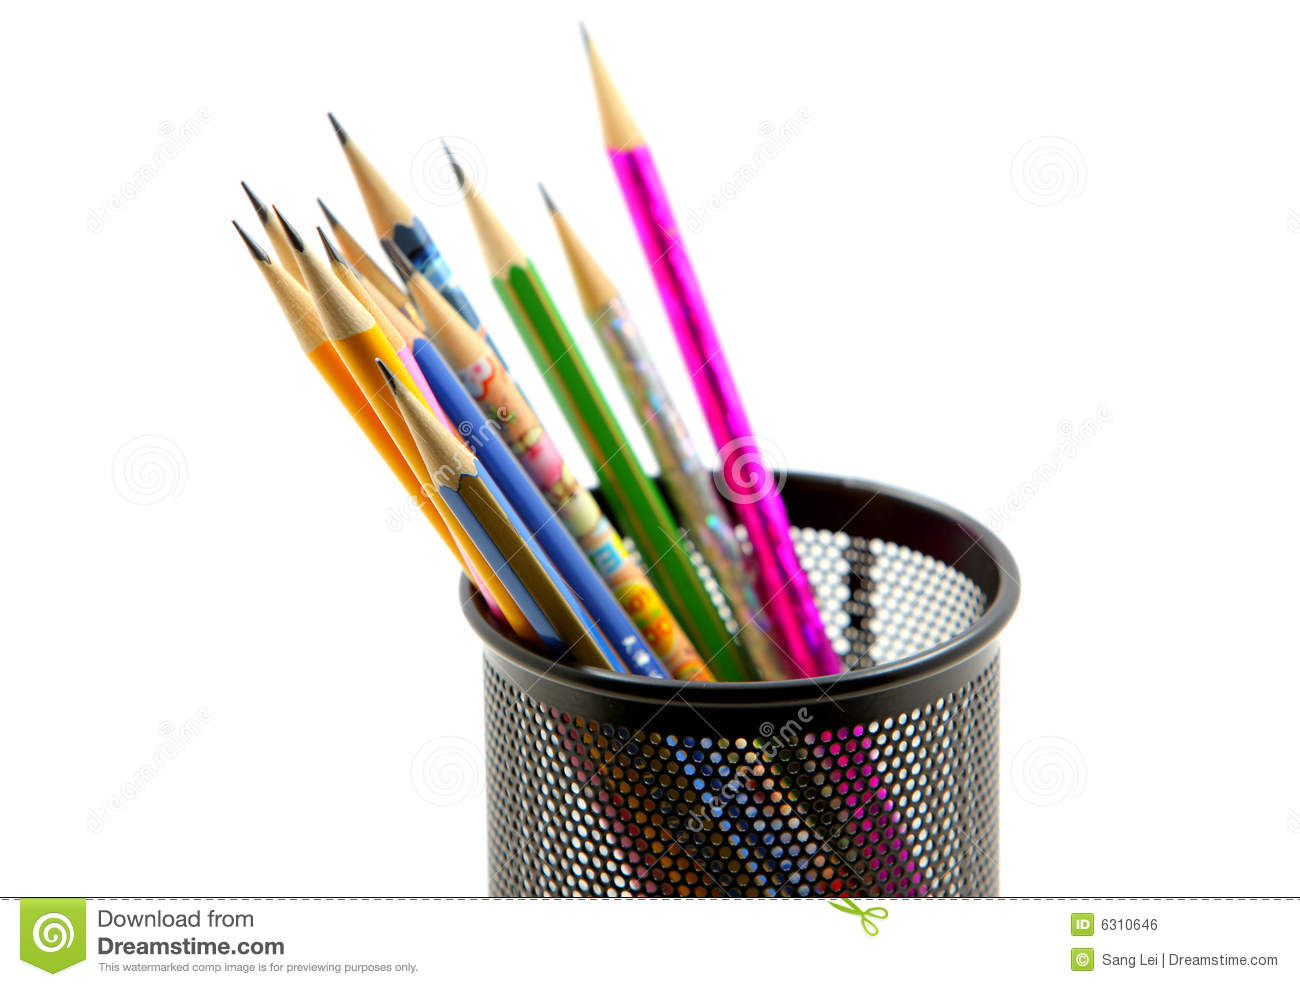 pen container stock photo  image of tools  pencils  objects